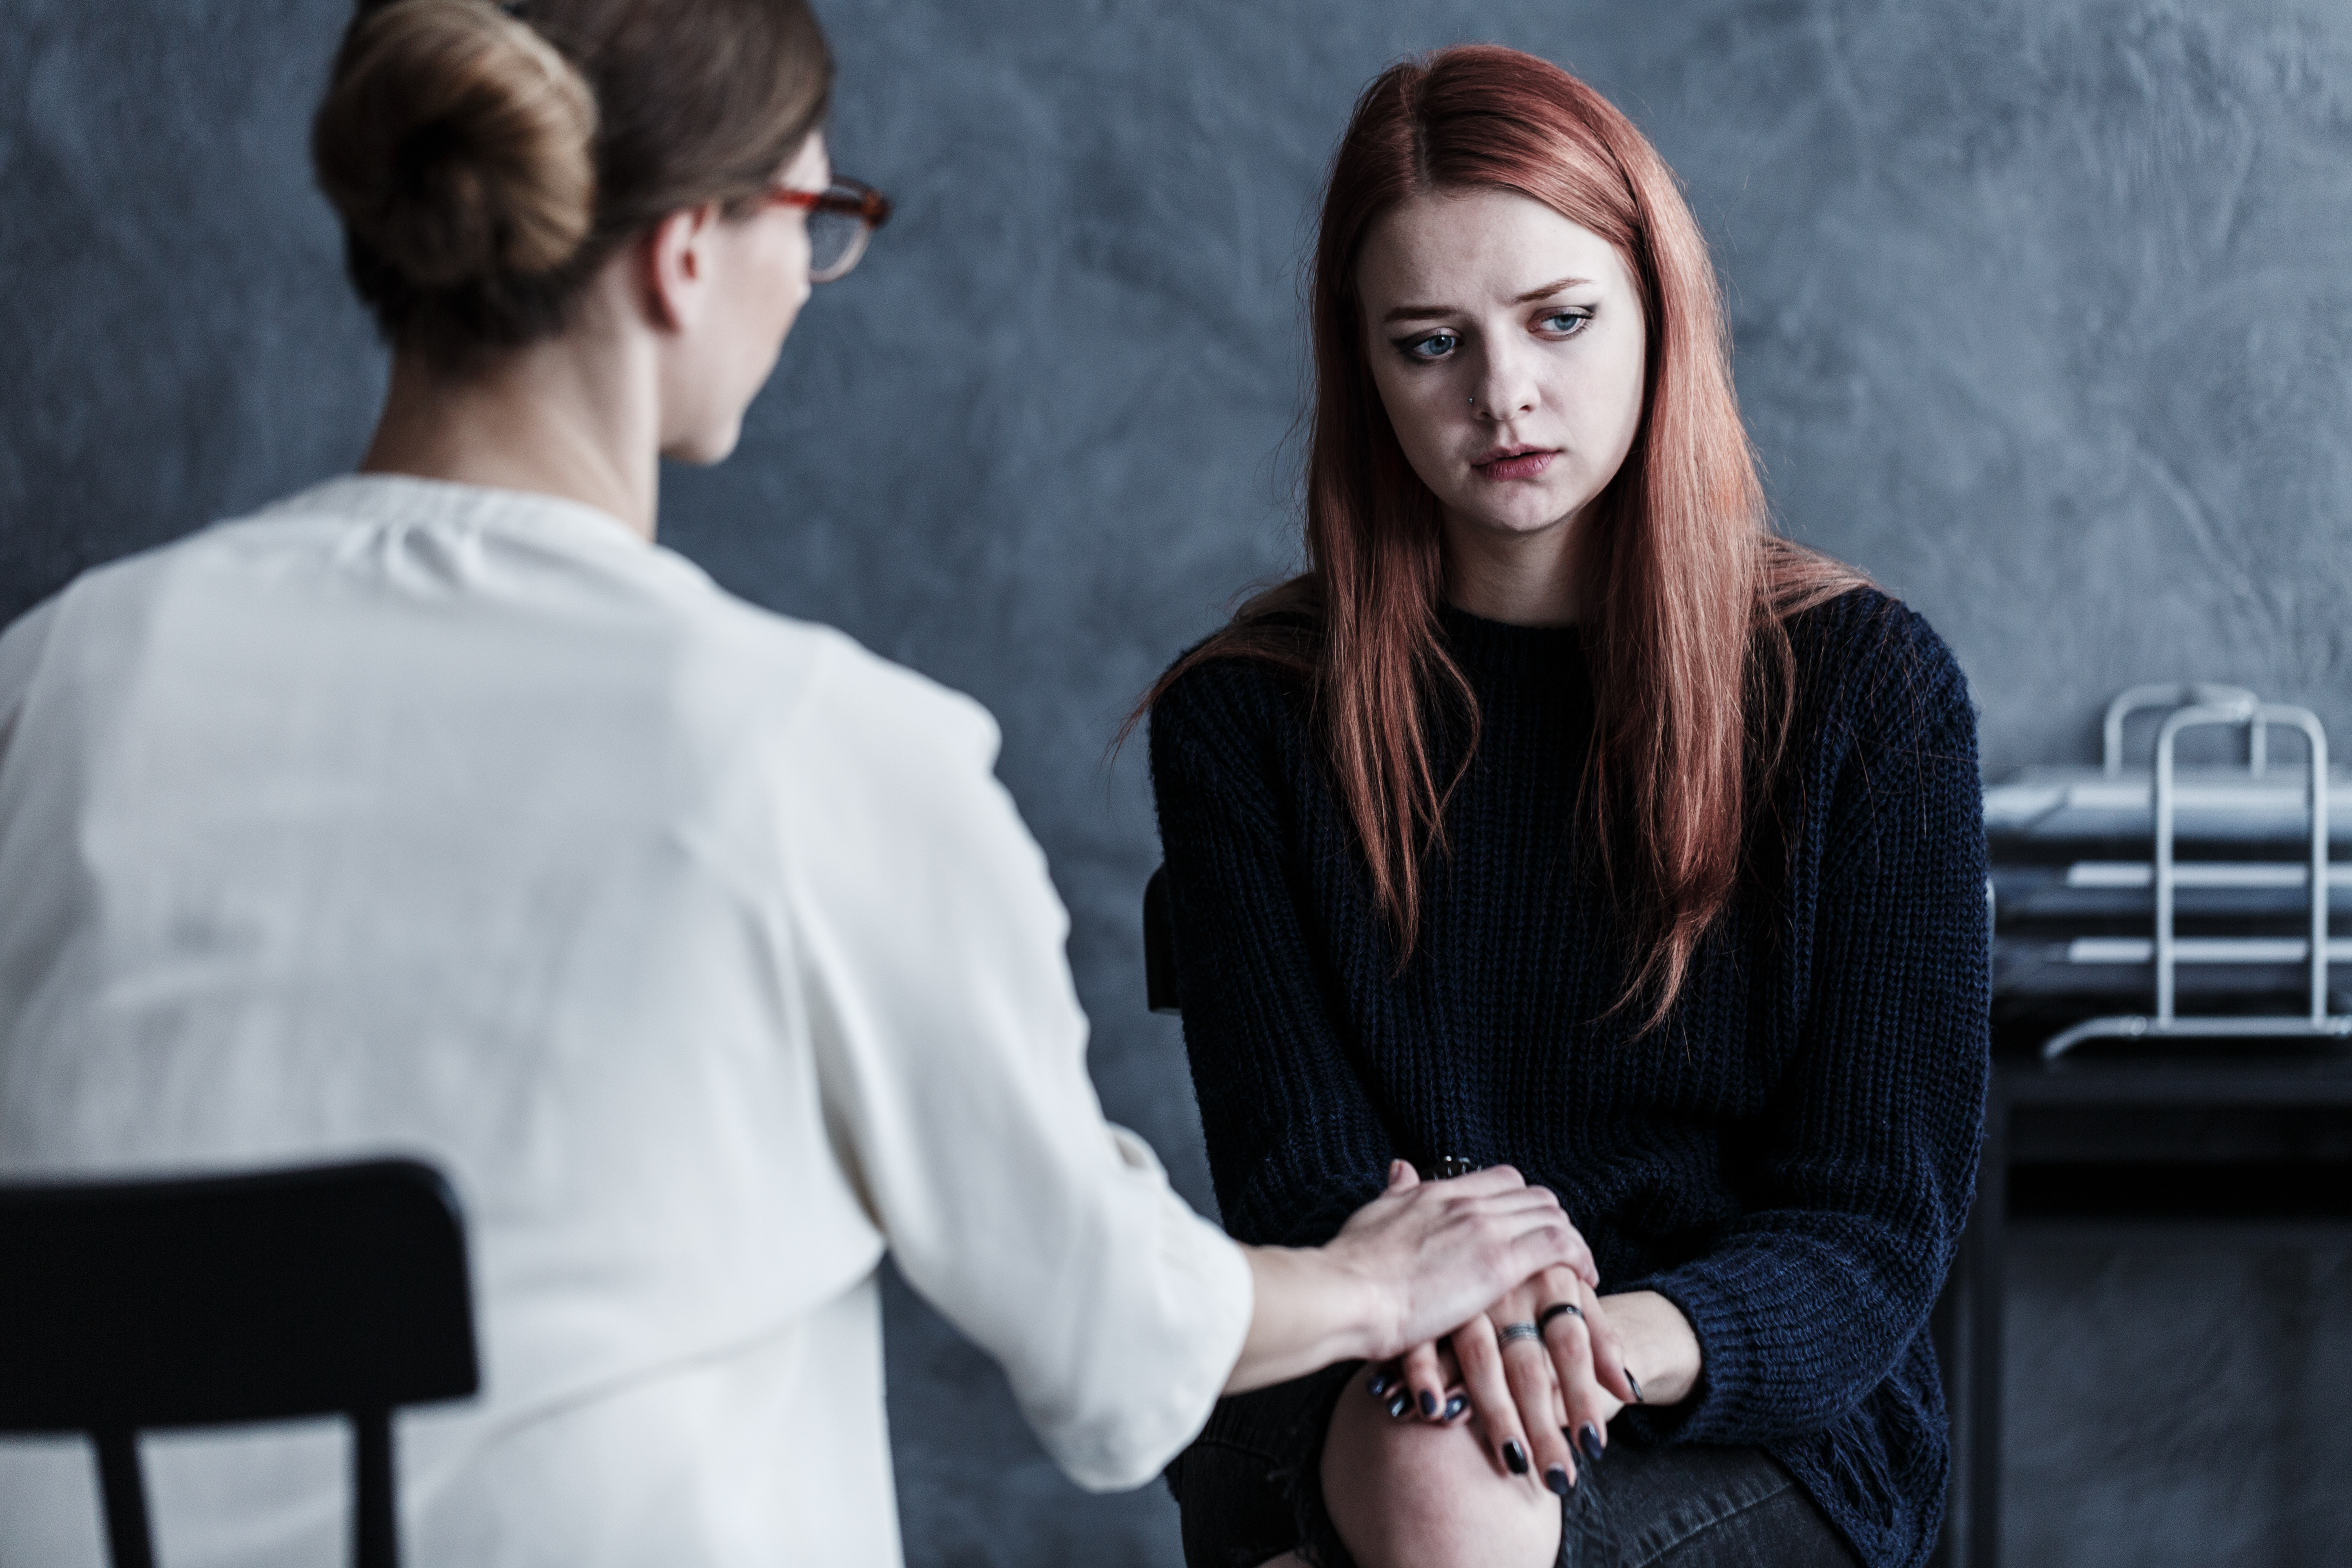 Therapist looking after her patient